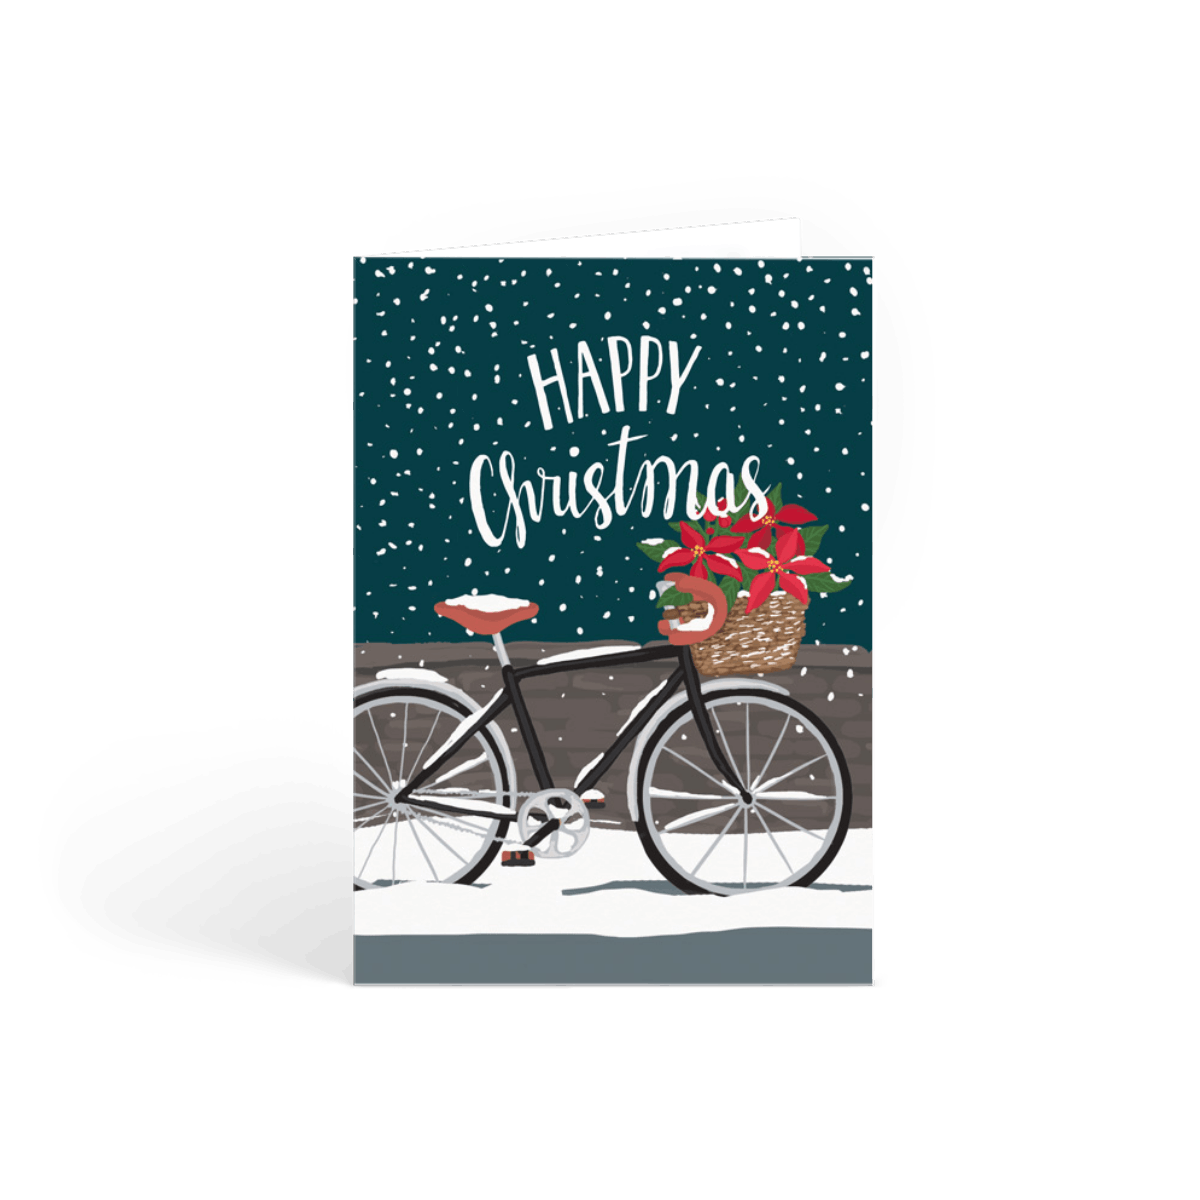 Https%3a%2f%2fwww.papier.com%2fproduct image%2f3525%2f2%2fchristmas bicycle 942 front 1567799603.png?ixlib=rb 1.1